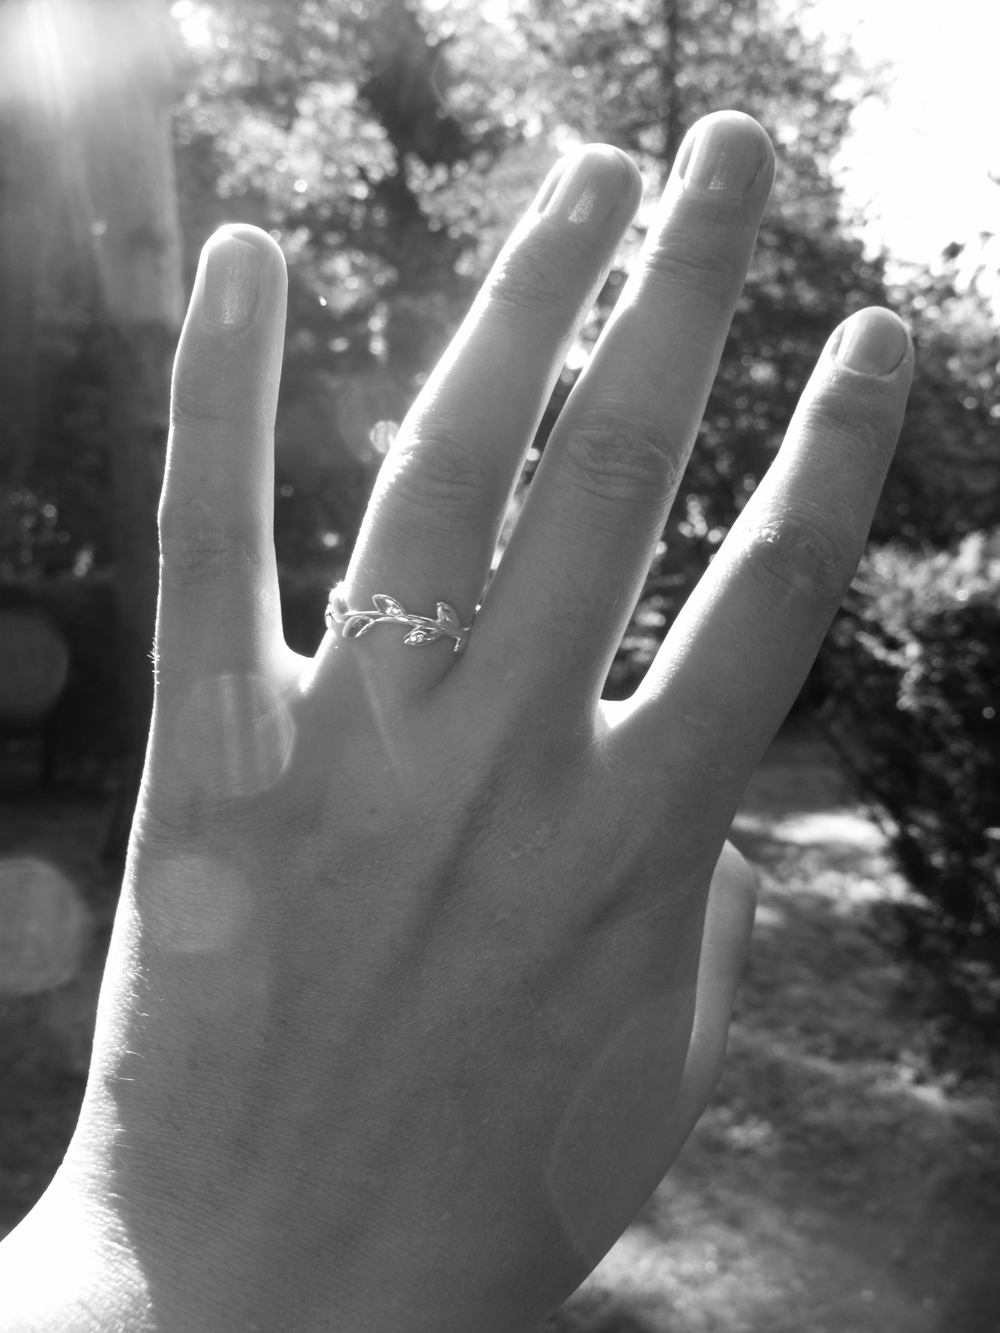 My engagement ring - a silver tiffany's band in the form of an olive branch